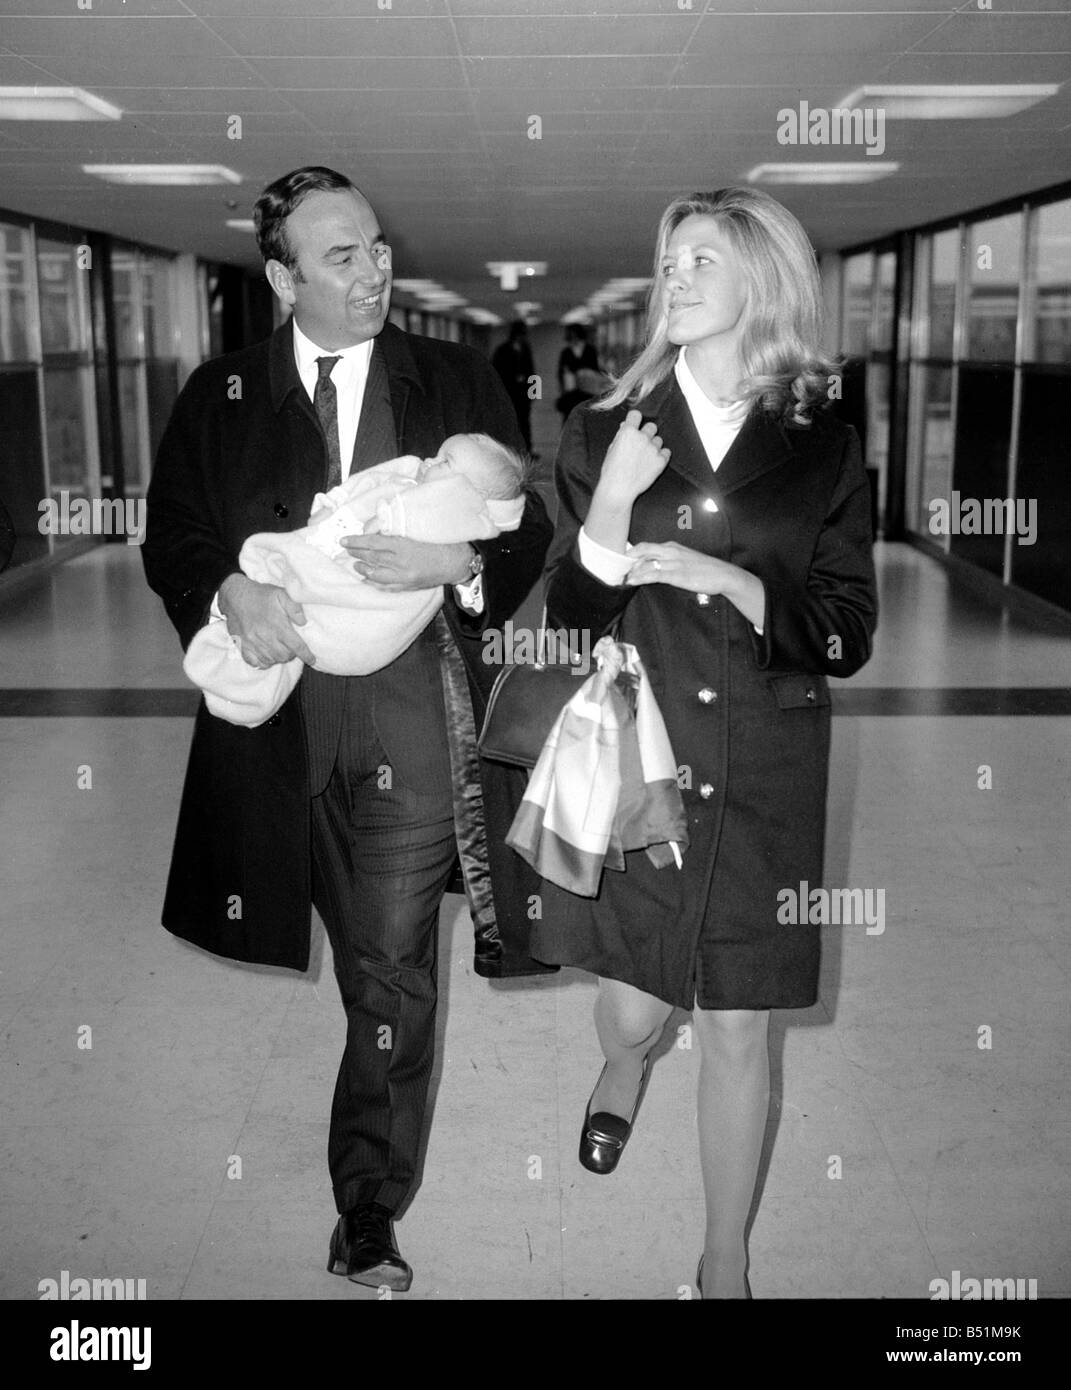 Rupert Murdoch with his wife Anna and their three month old daughter Elizabeth at Heathrow Airport arriving back - Stock Image